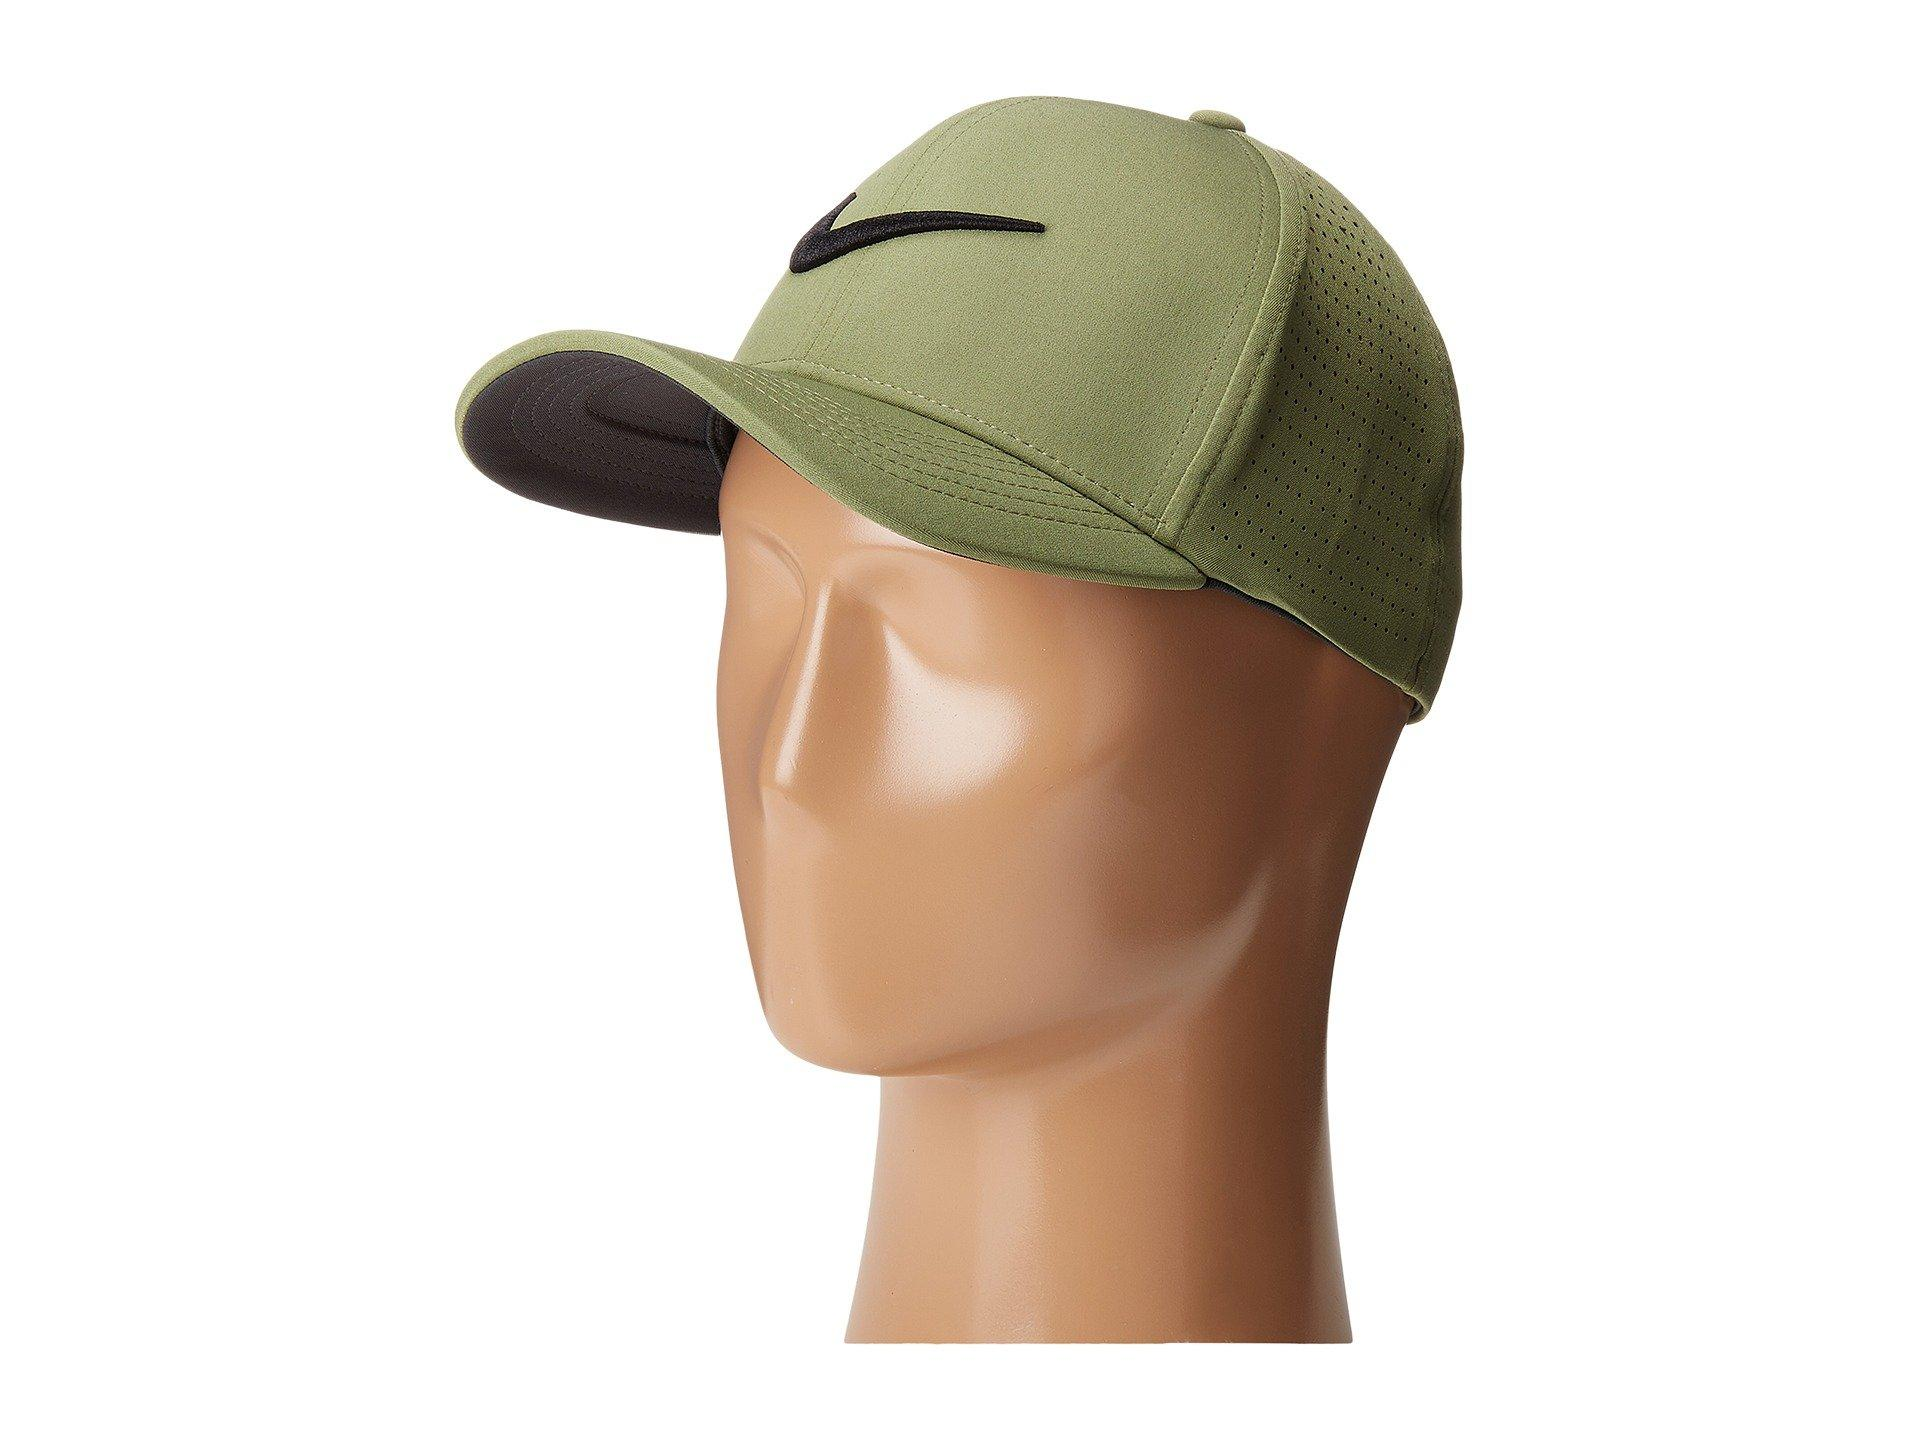 Nike Classic99 Perf Cap In Palm Green/Black